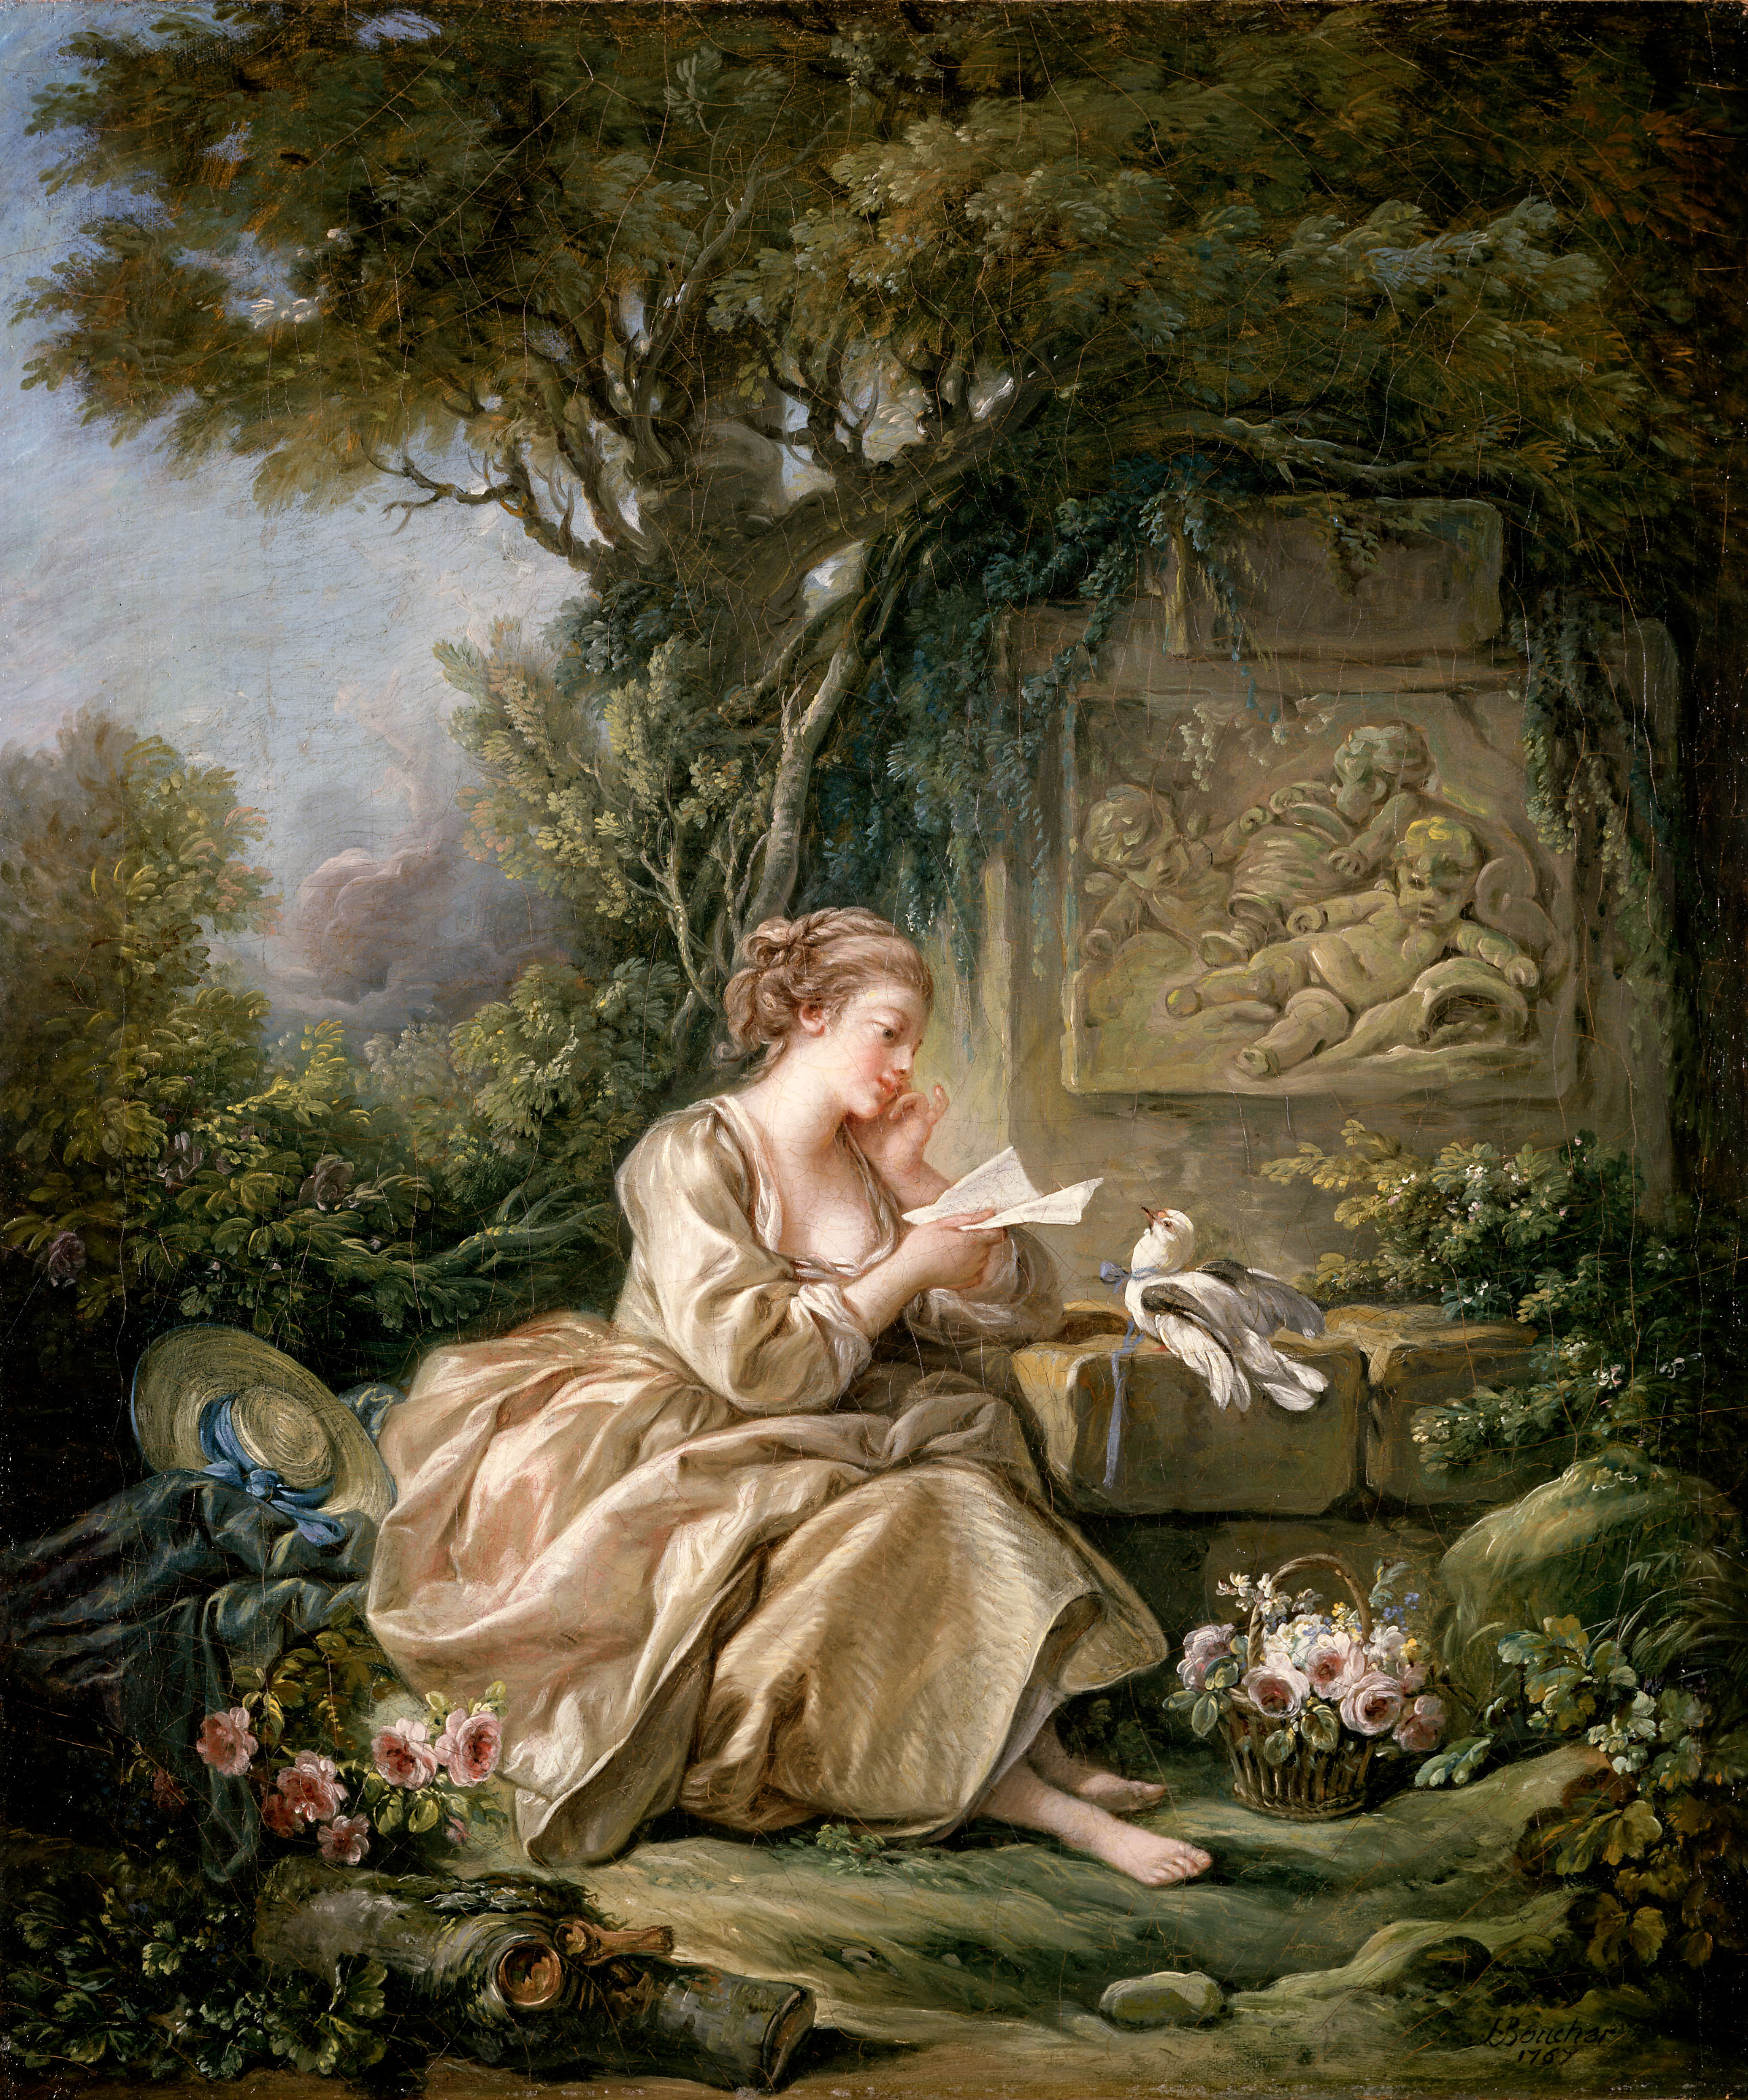 The Secret Message, oil on canvas painting by François Boucher (1703–1770) in 1767 (painting is signed and dated). Currently at the Herzog Anton Ulrich-Museum, Braunschweig, Lower Saxony, Germany.